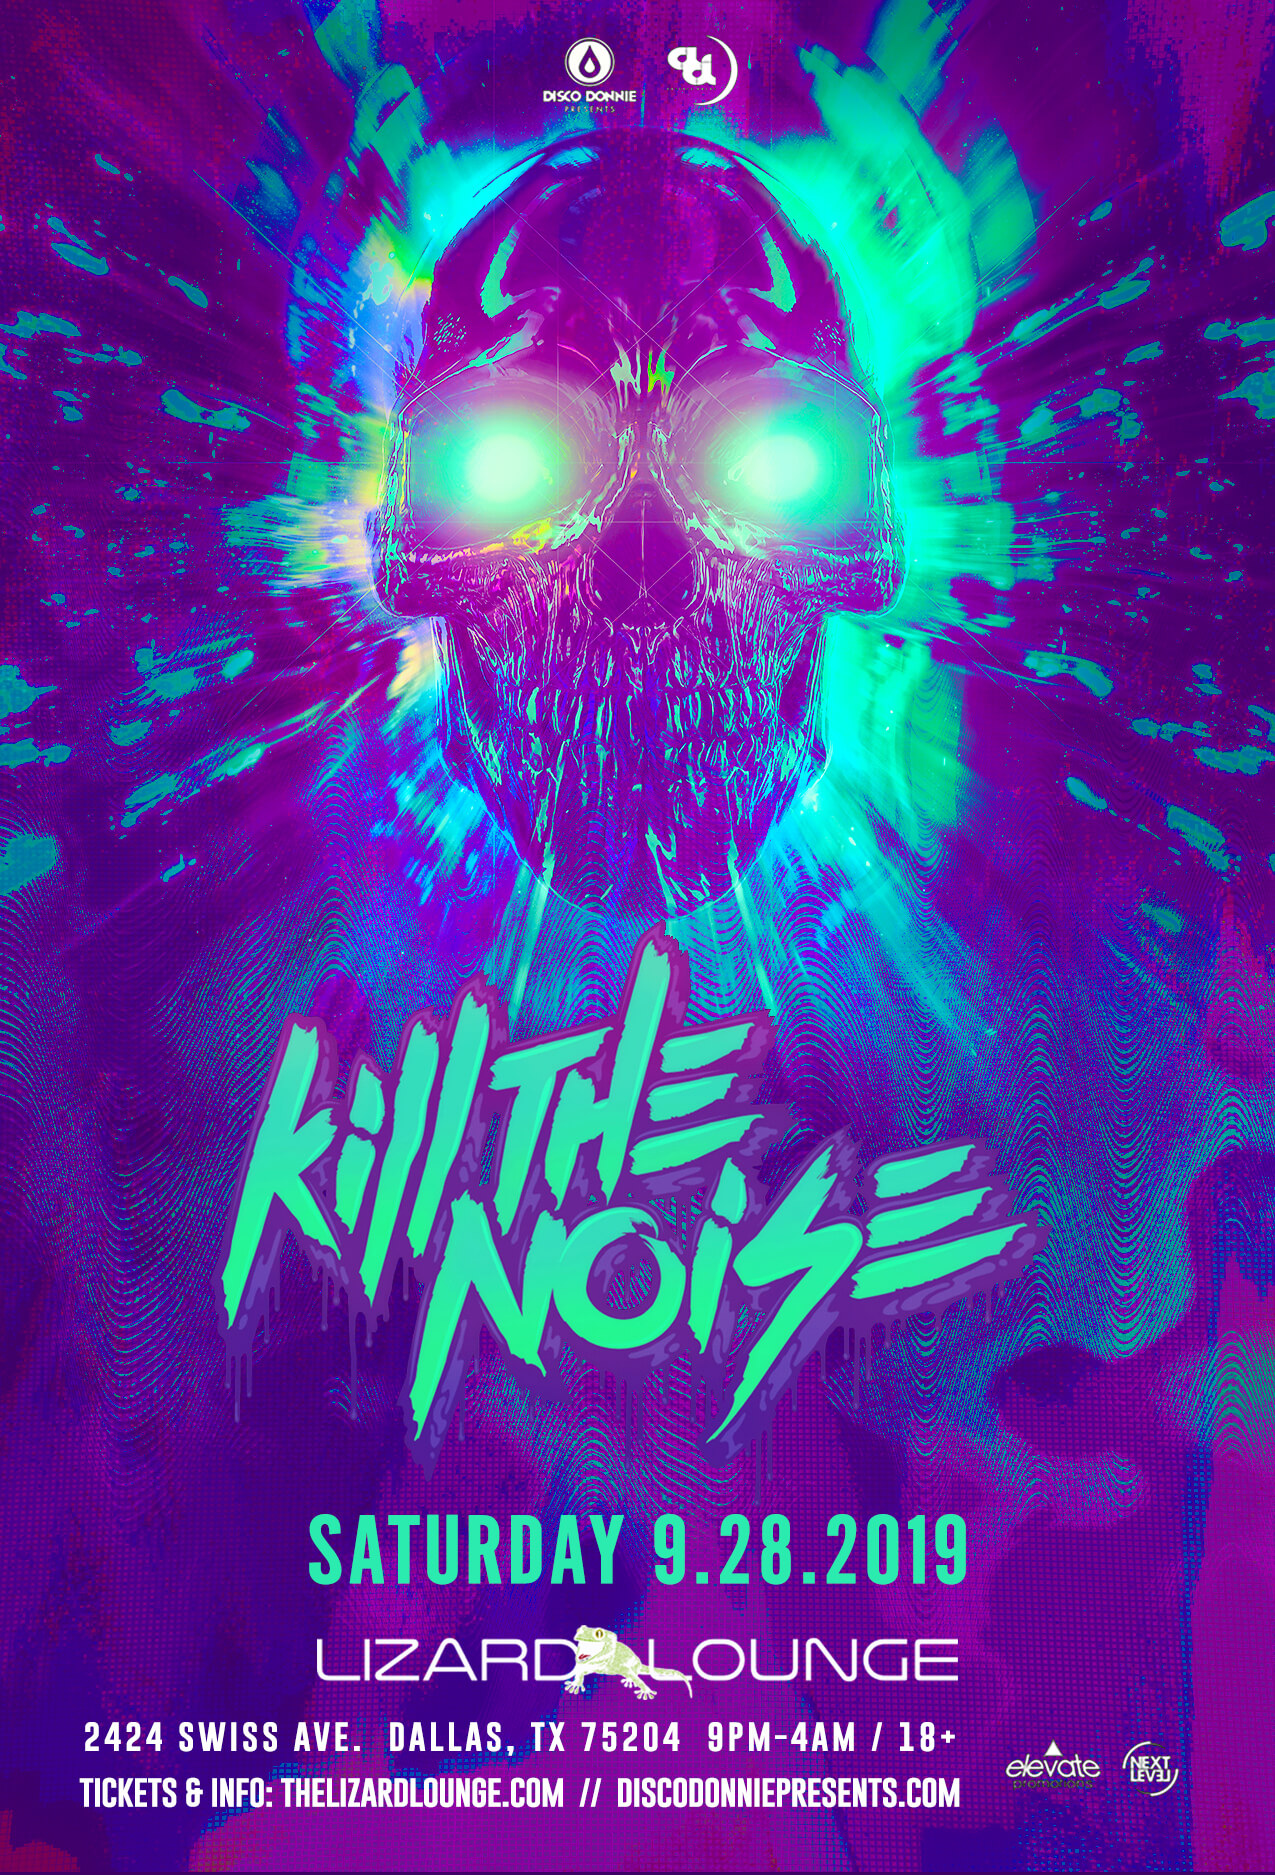 Kill The Noise at Lizard Lounge